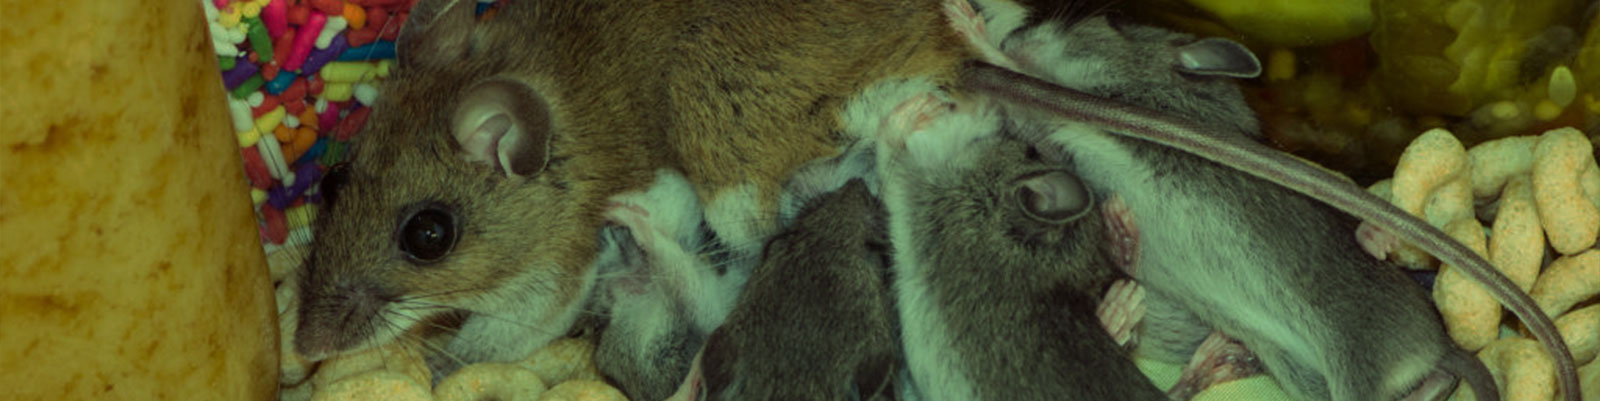 Got Mice? 3 Easy Signs of a Rodent Infestation